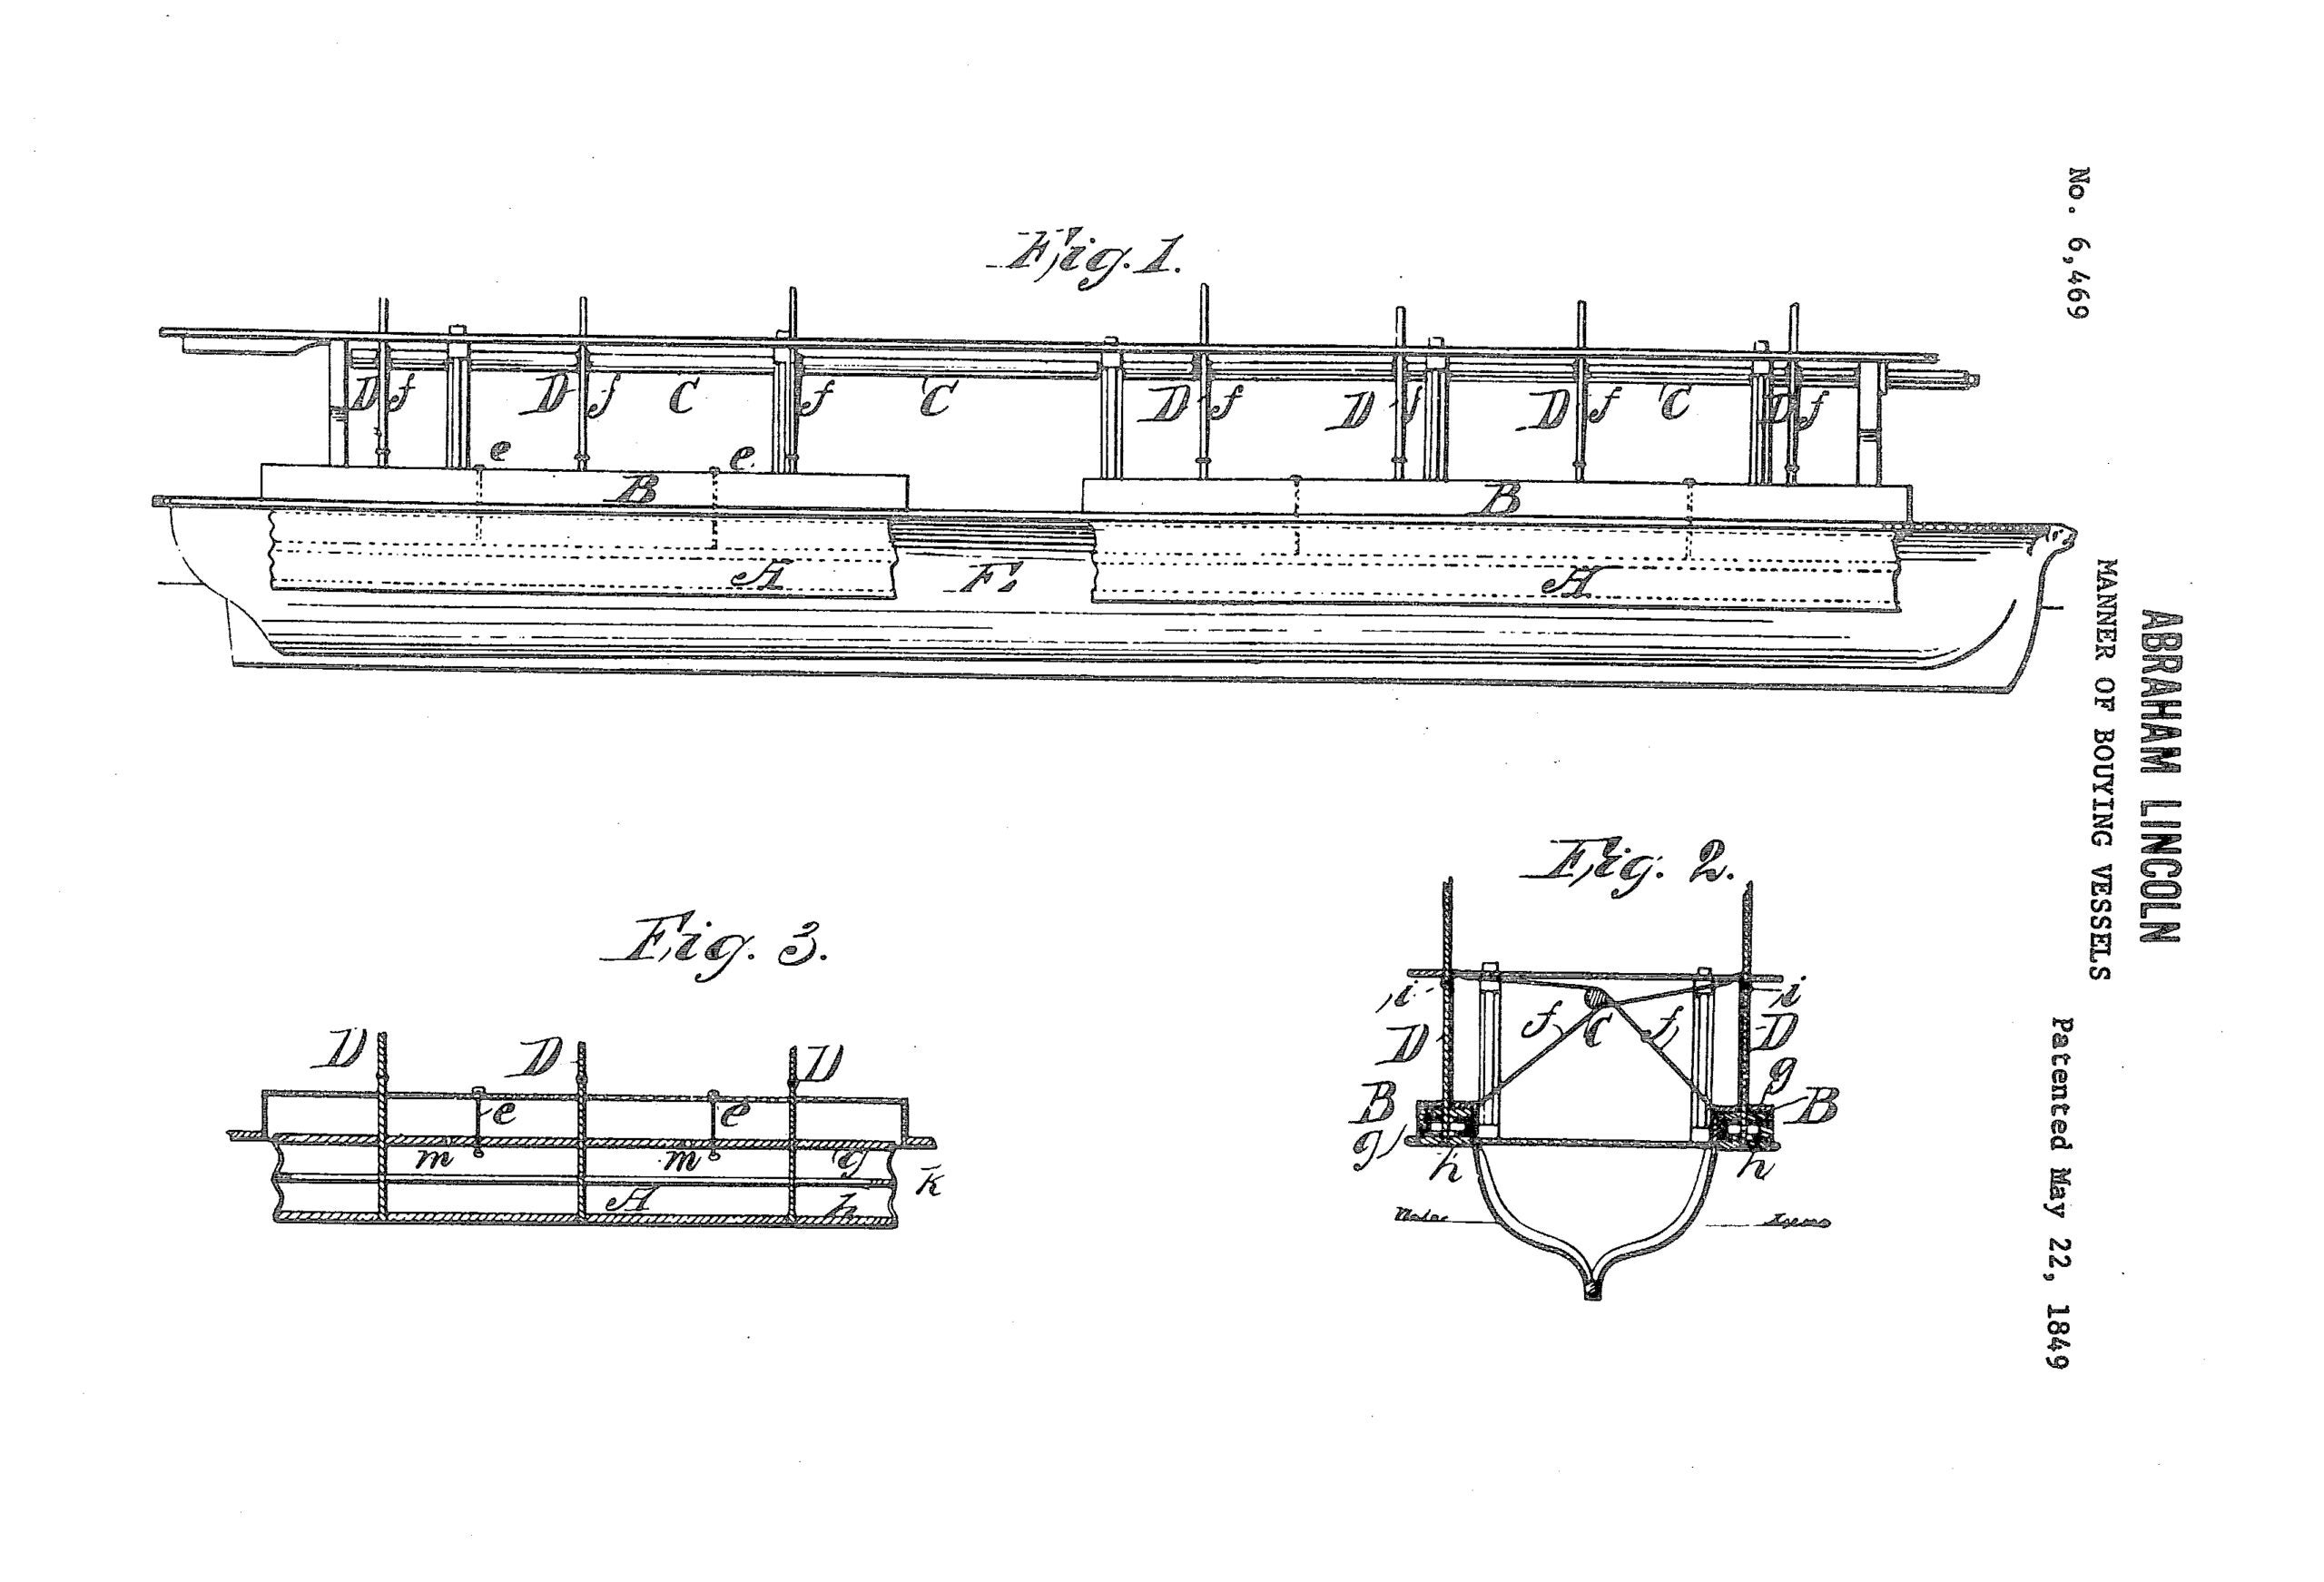 Sketches of the boat-safety device that President Abraham Lincoln patented